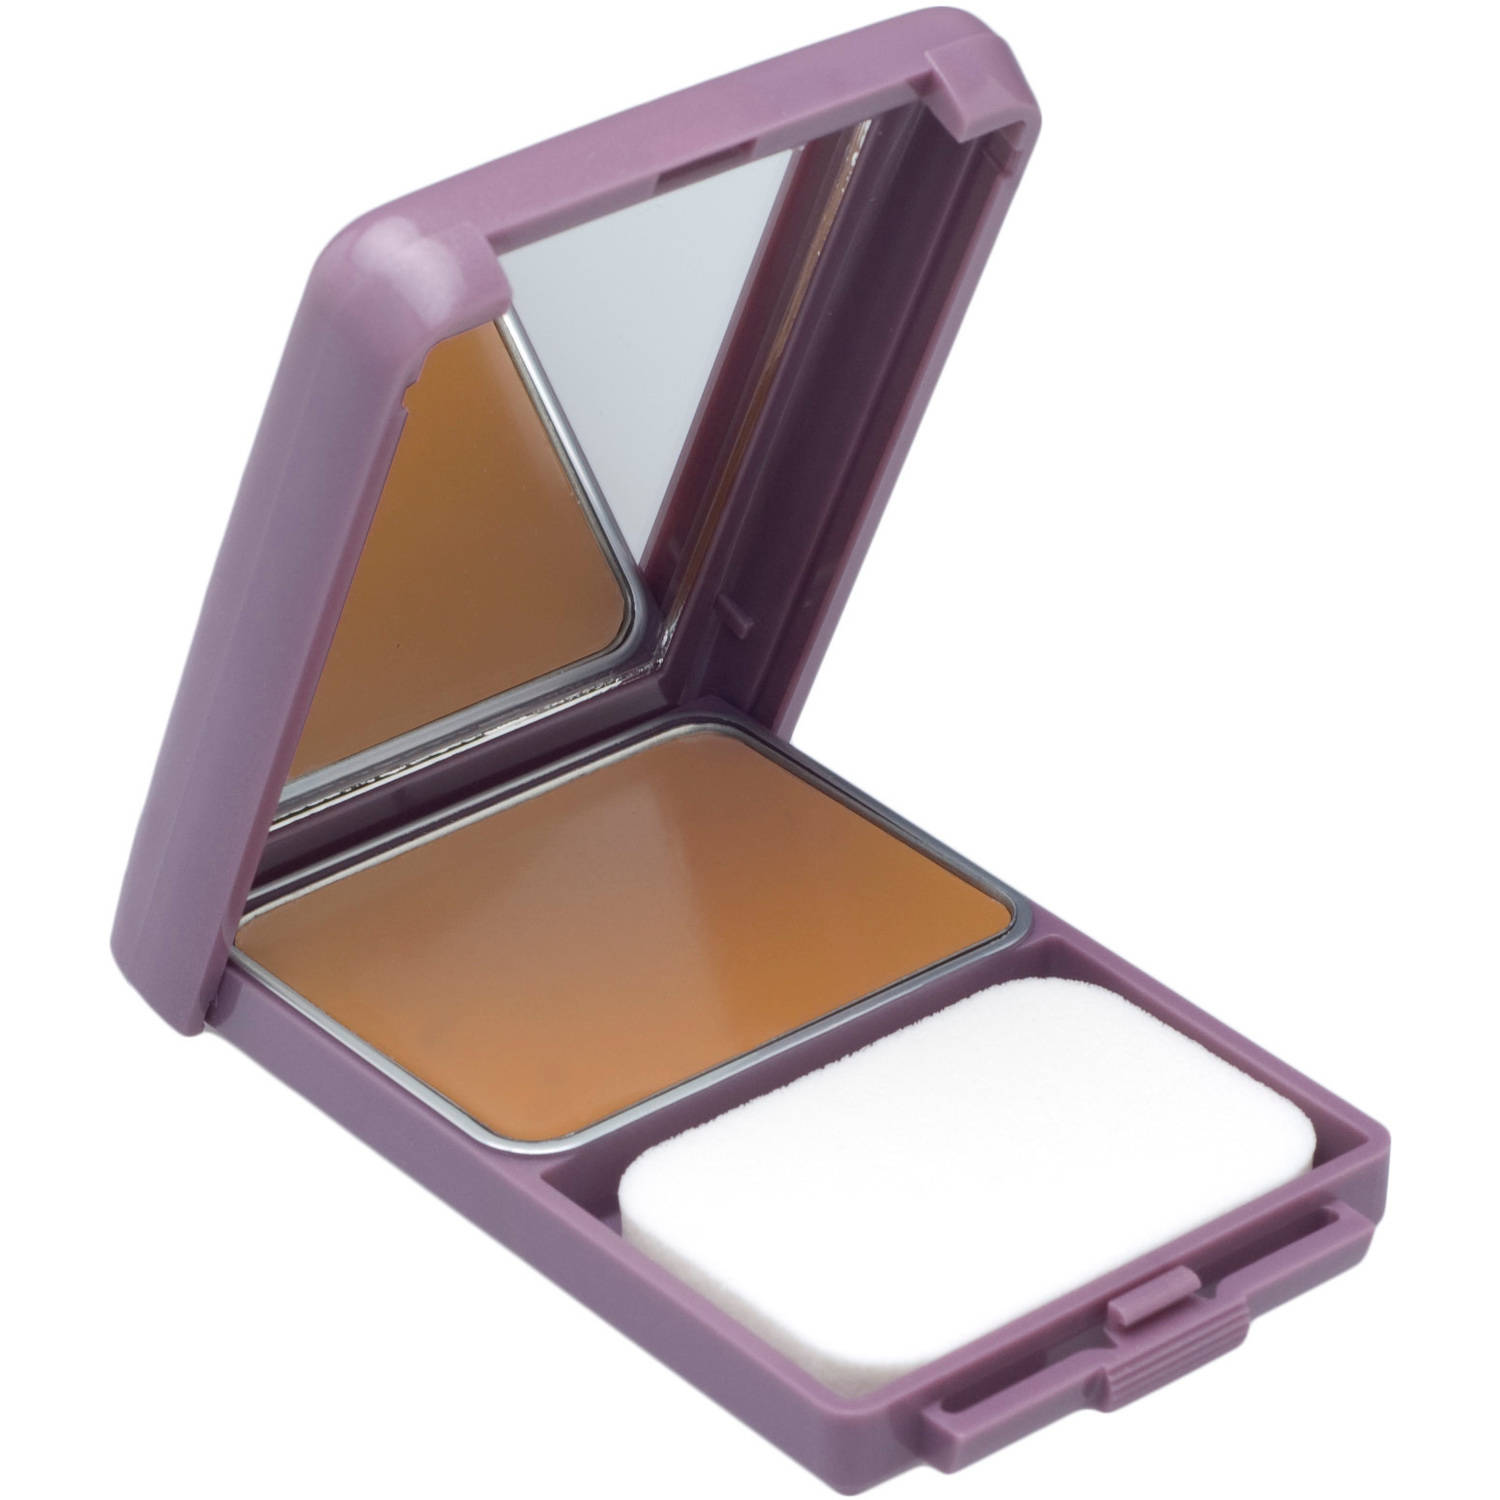 Covergirl Queen Collection Natural Hue Foundation Compact